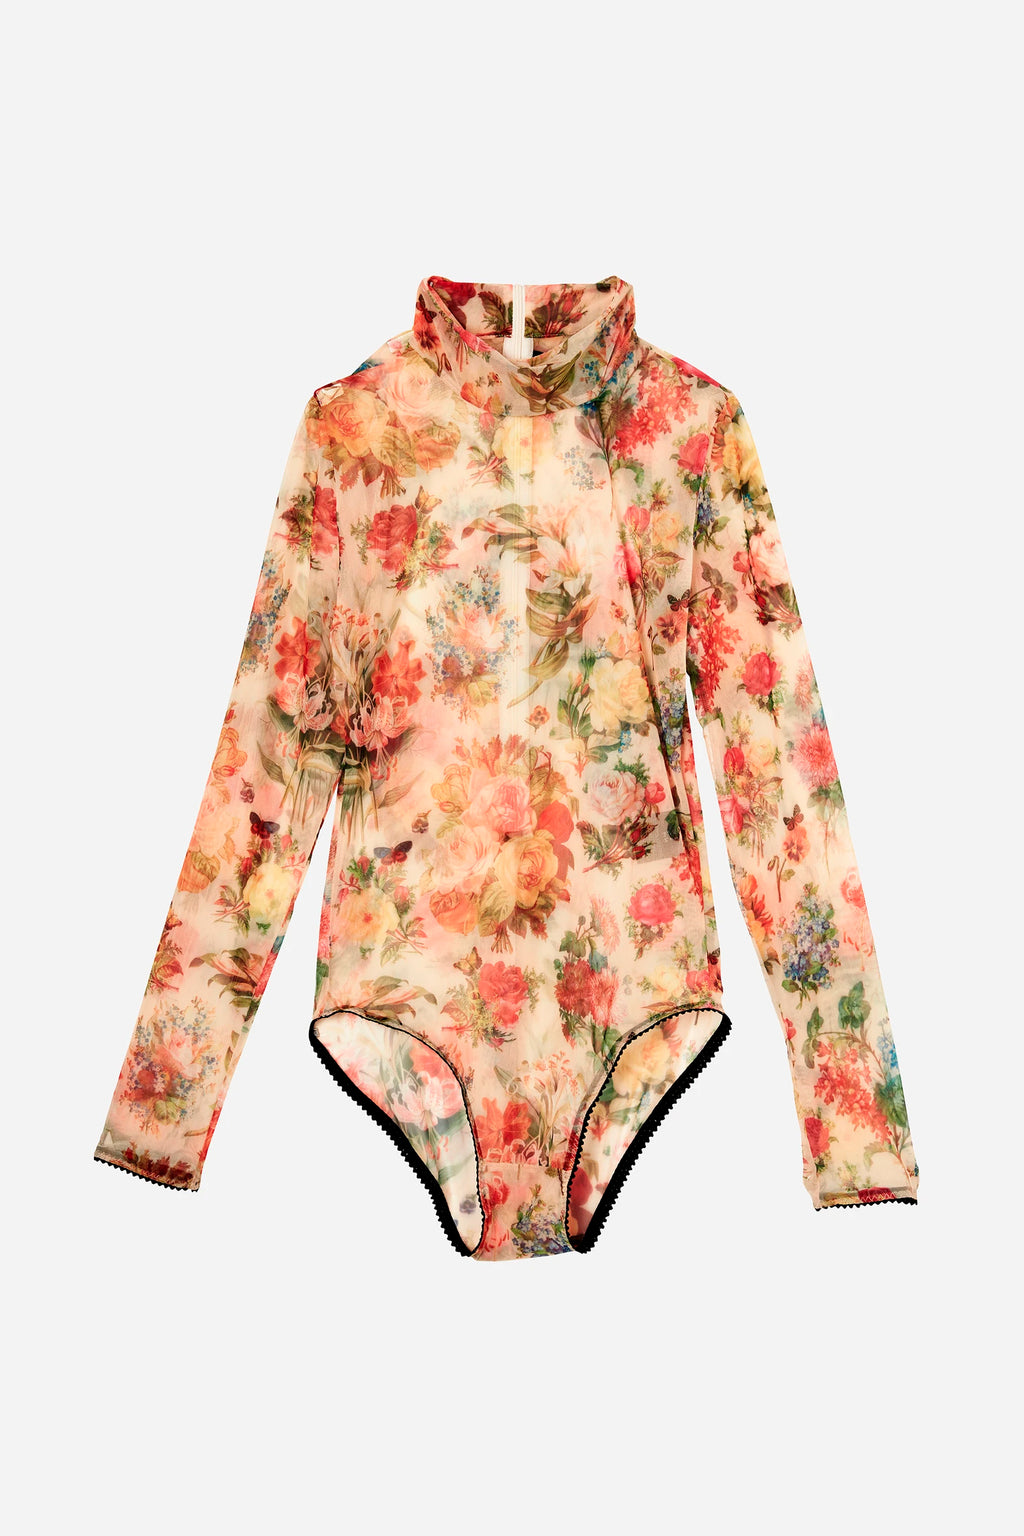 FADED MEMORY BODYSUIT